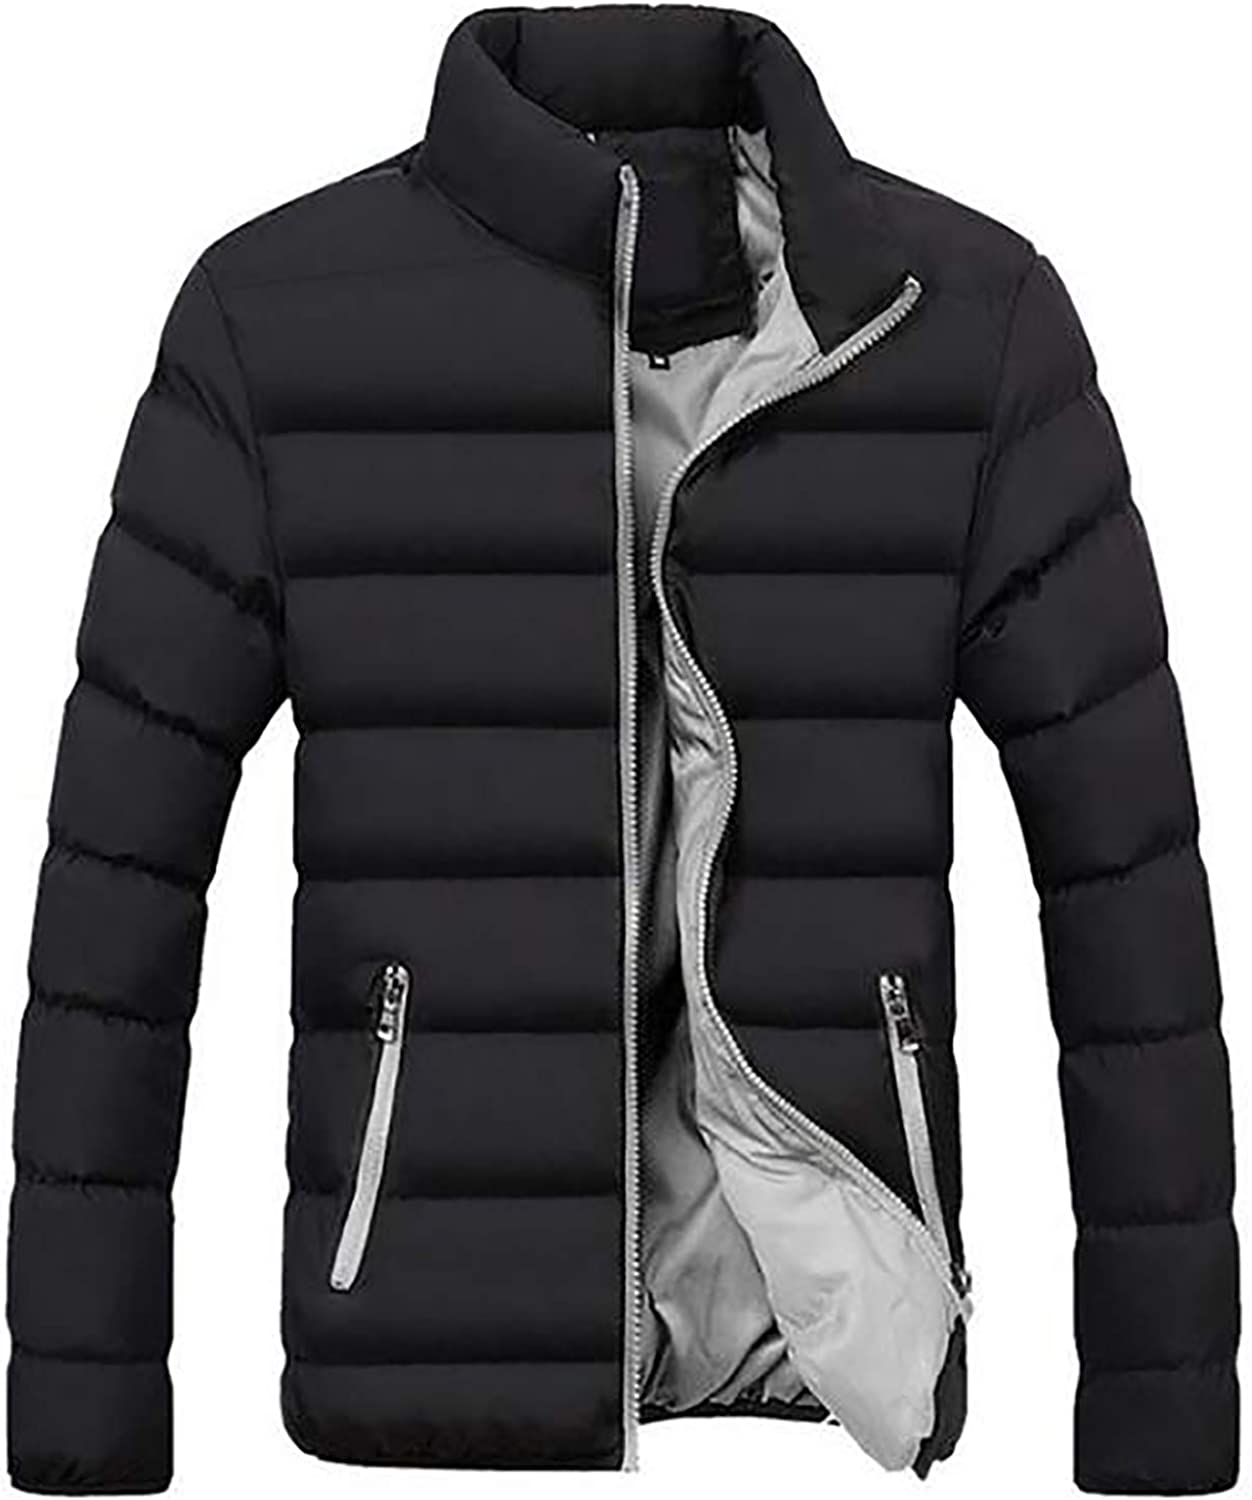 2276dc2a9 Ivan Johns Coats Winter Winter Winter New Men Jacket, Pure color ...